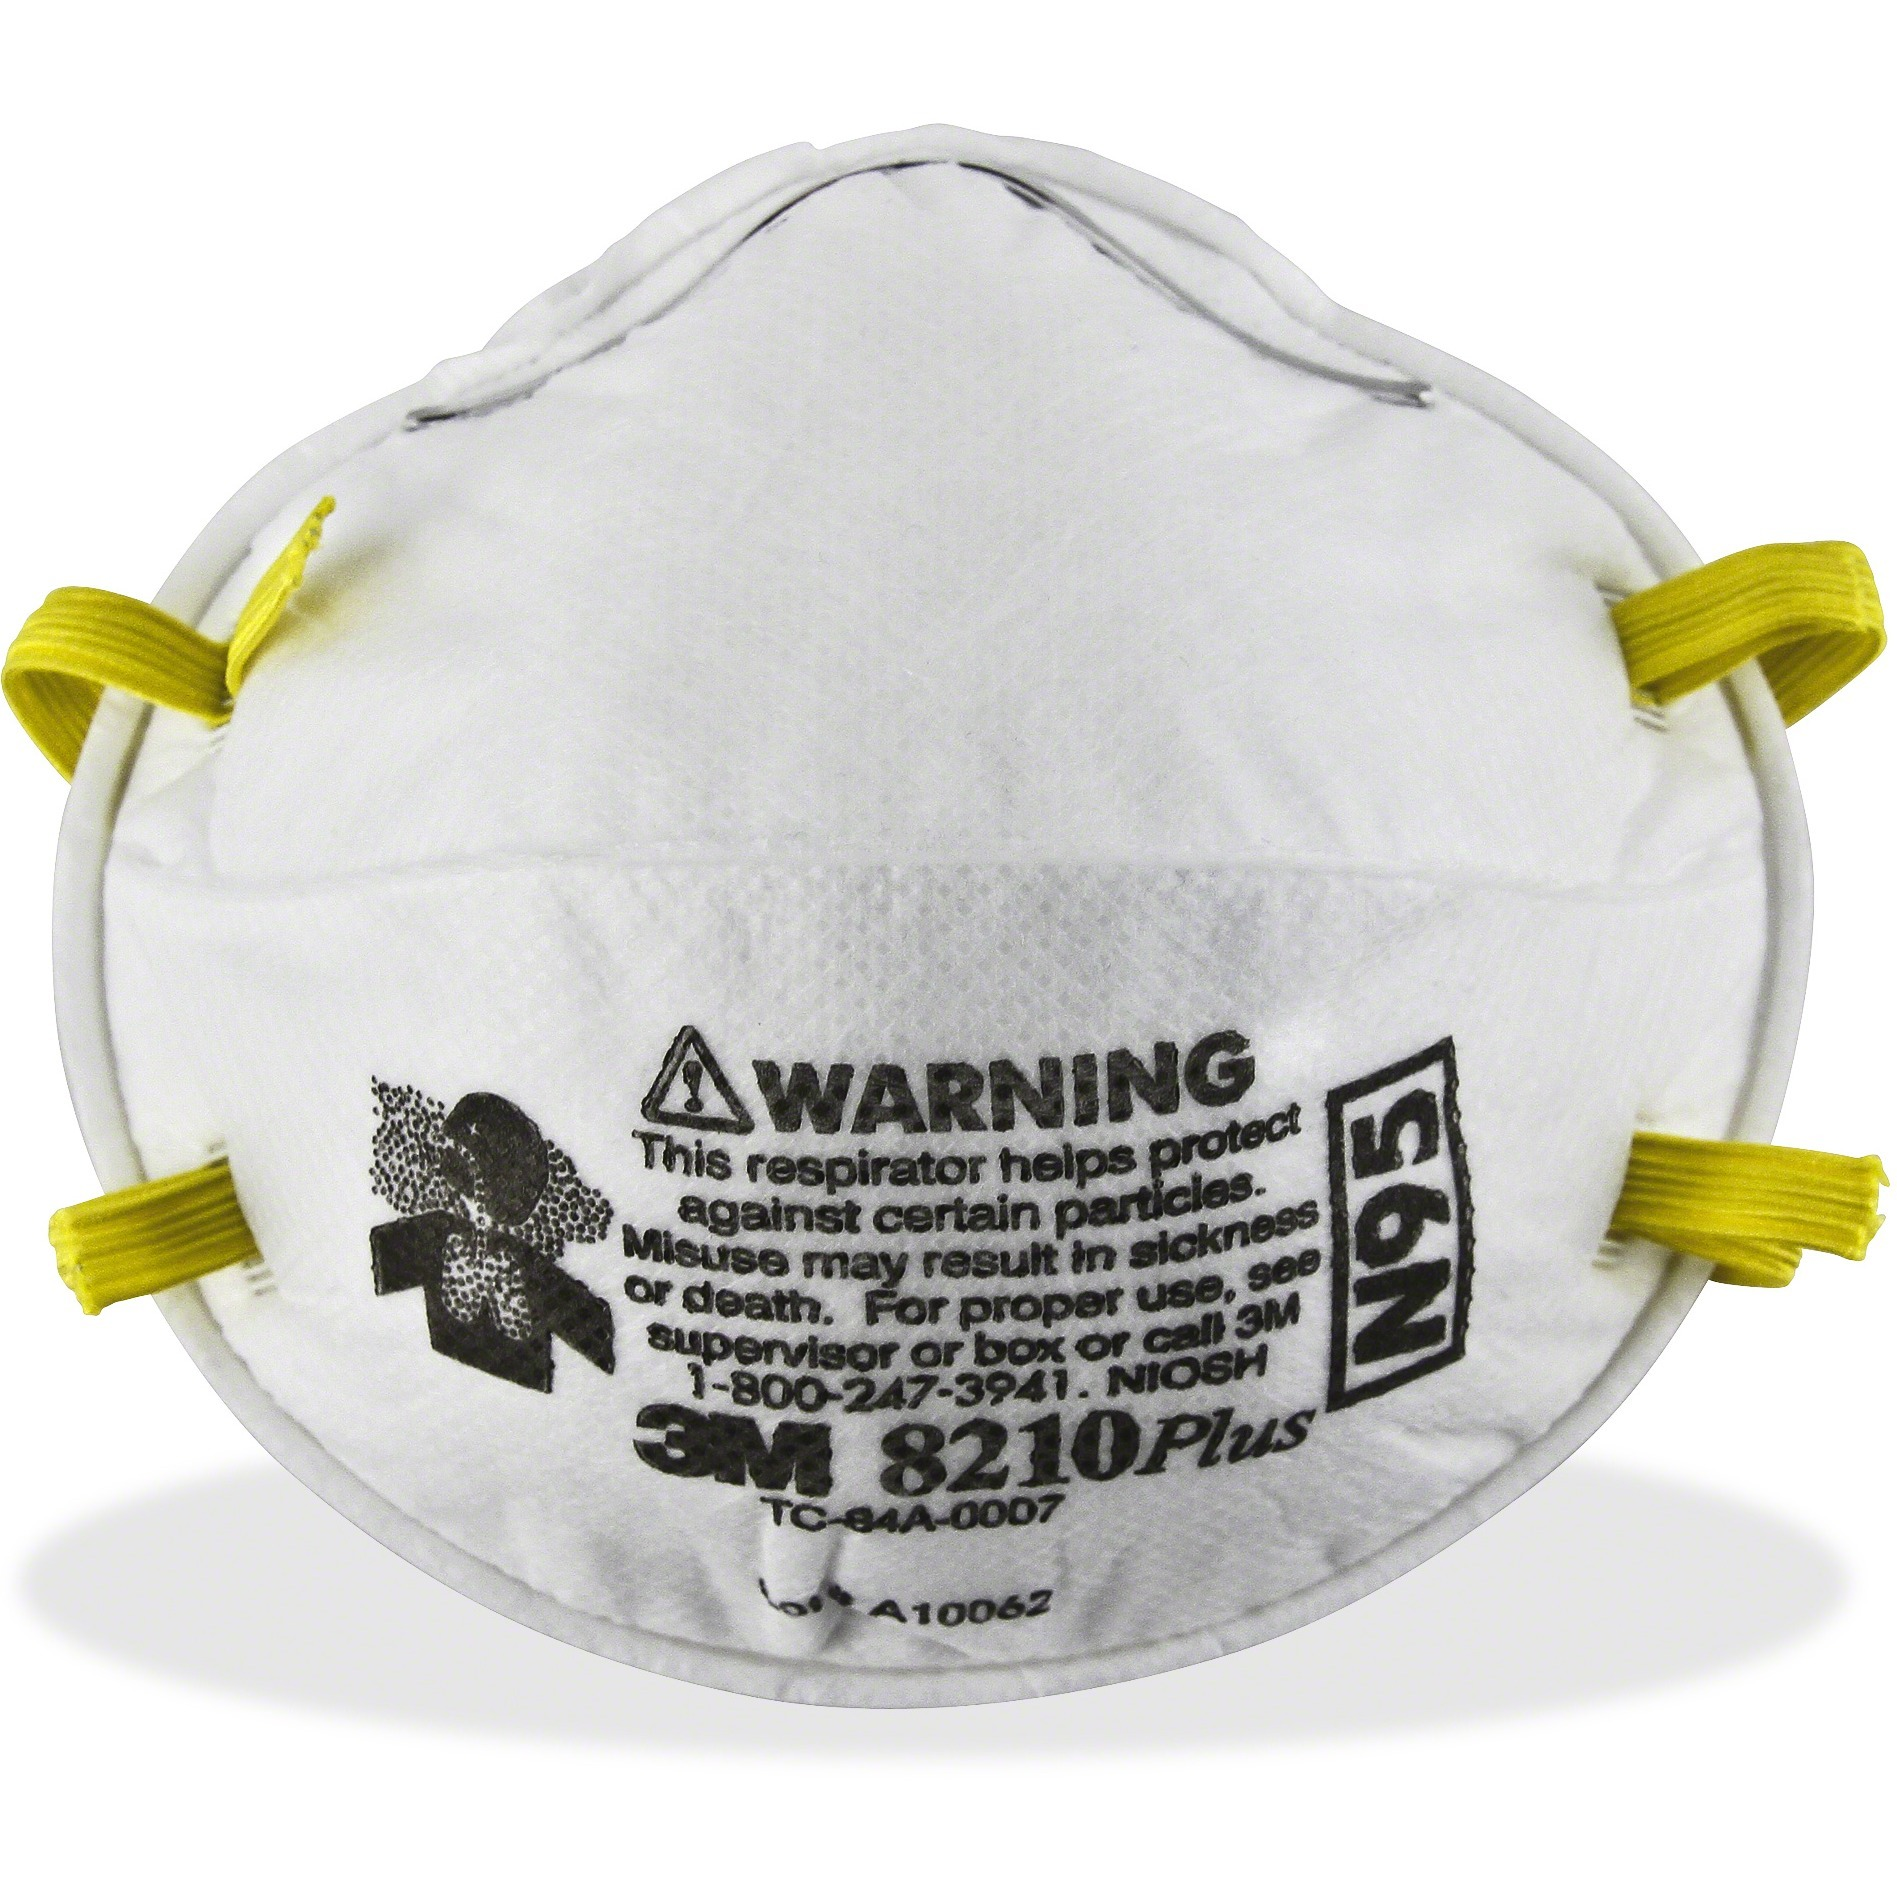 3M 8210PLUS N95 Particulate Respirator, White, 20   Box (Quantity) by 3M